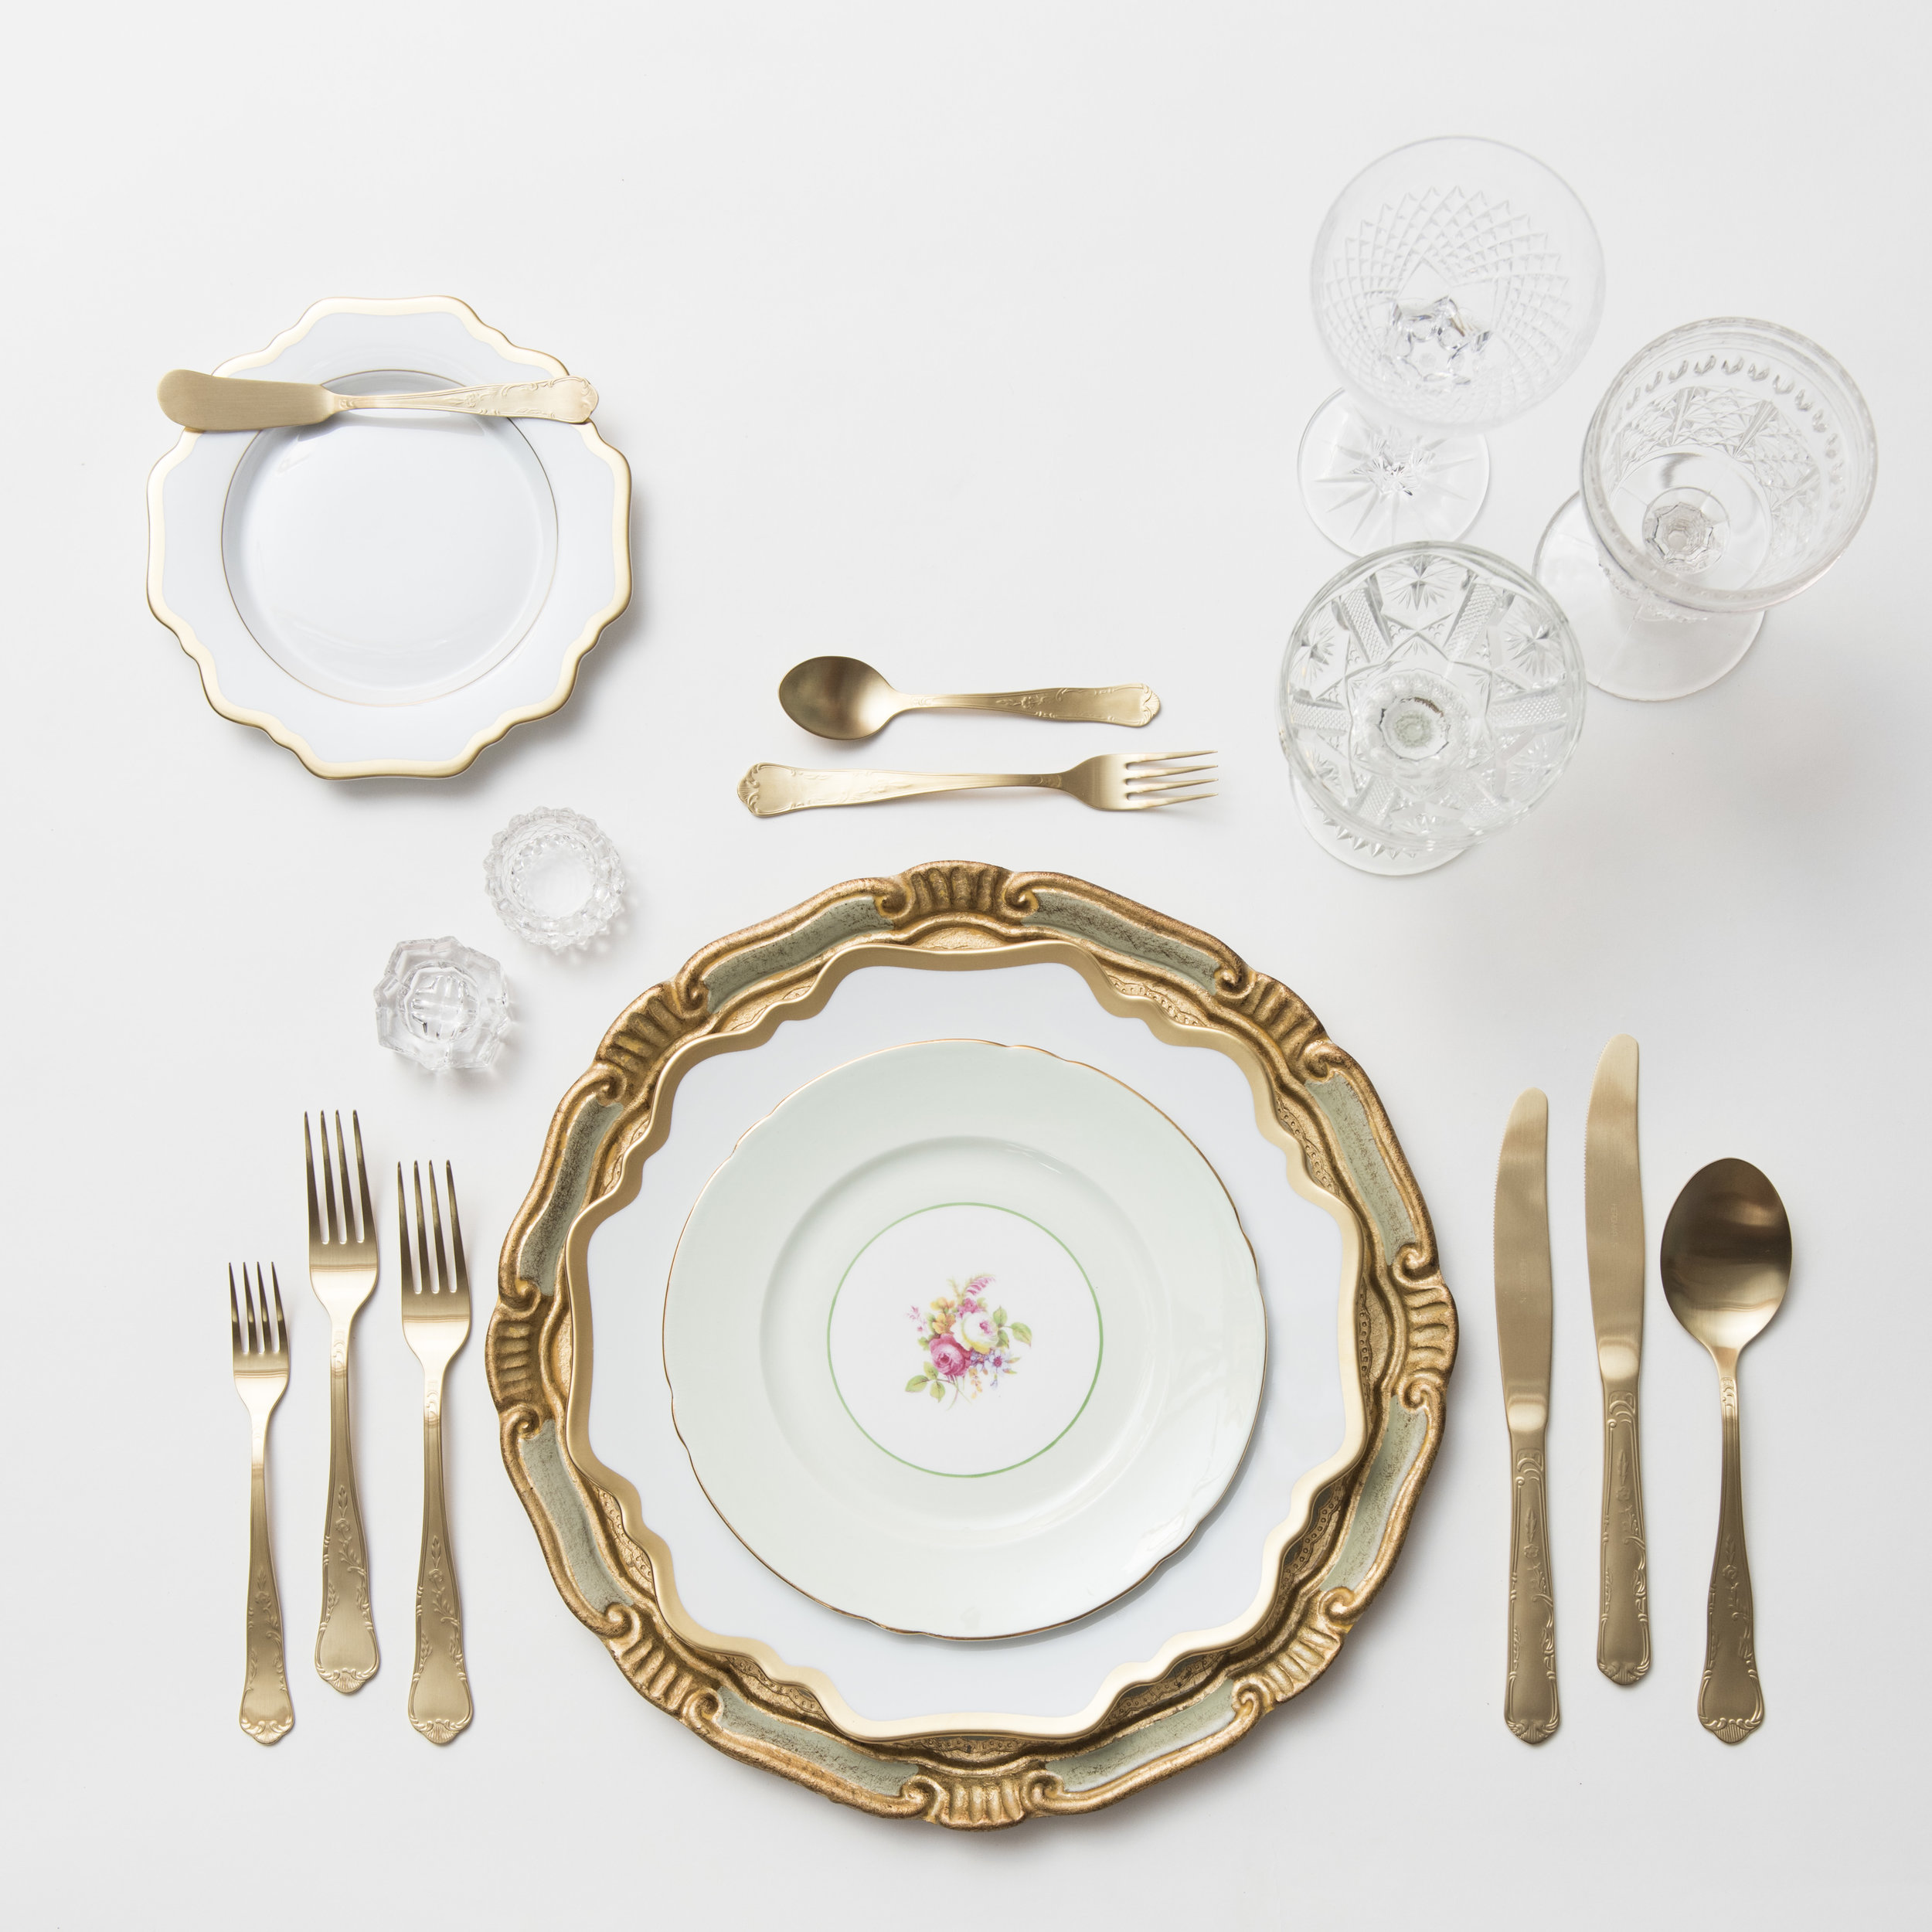 RENT: Florentine Chargers in Sage/Gold + Anna Weatherley Dinnerware in White/Gold + Green Botanicals Vintage China + Chateau Flatware in Matte Gold + Vintage Cut Crystal Goblets + Early American Pressed Glass Goblets + Vintage Champagne Coupes + Antique Crystal Salt Cellars  SHOP: Anna Weatherley Dinnerware in White/Gold